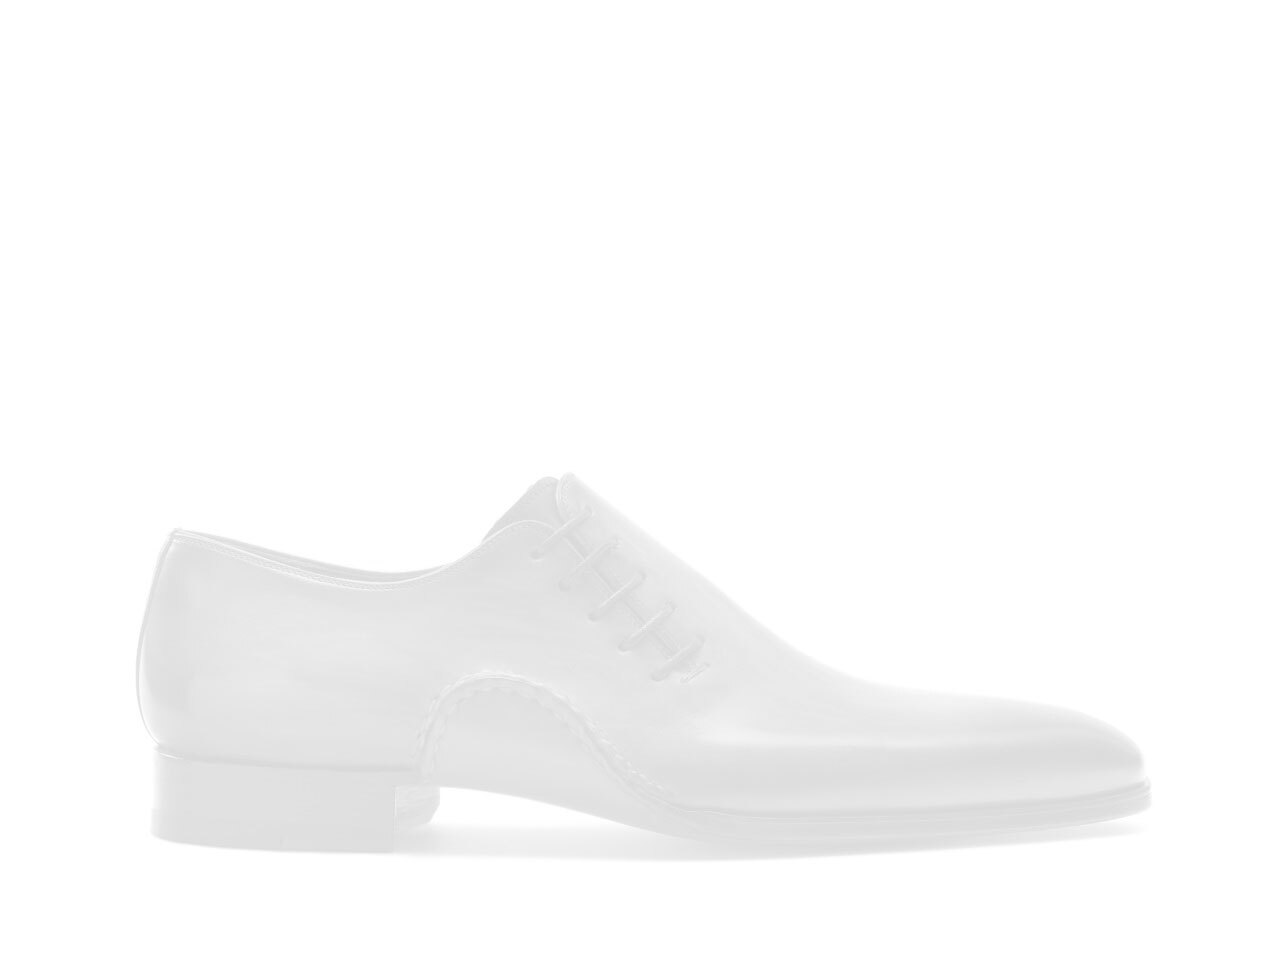 Side view of the Magnanni Lizandro Cuero Men's Sneakers